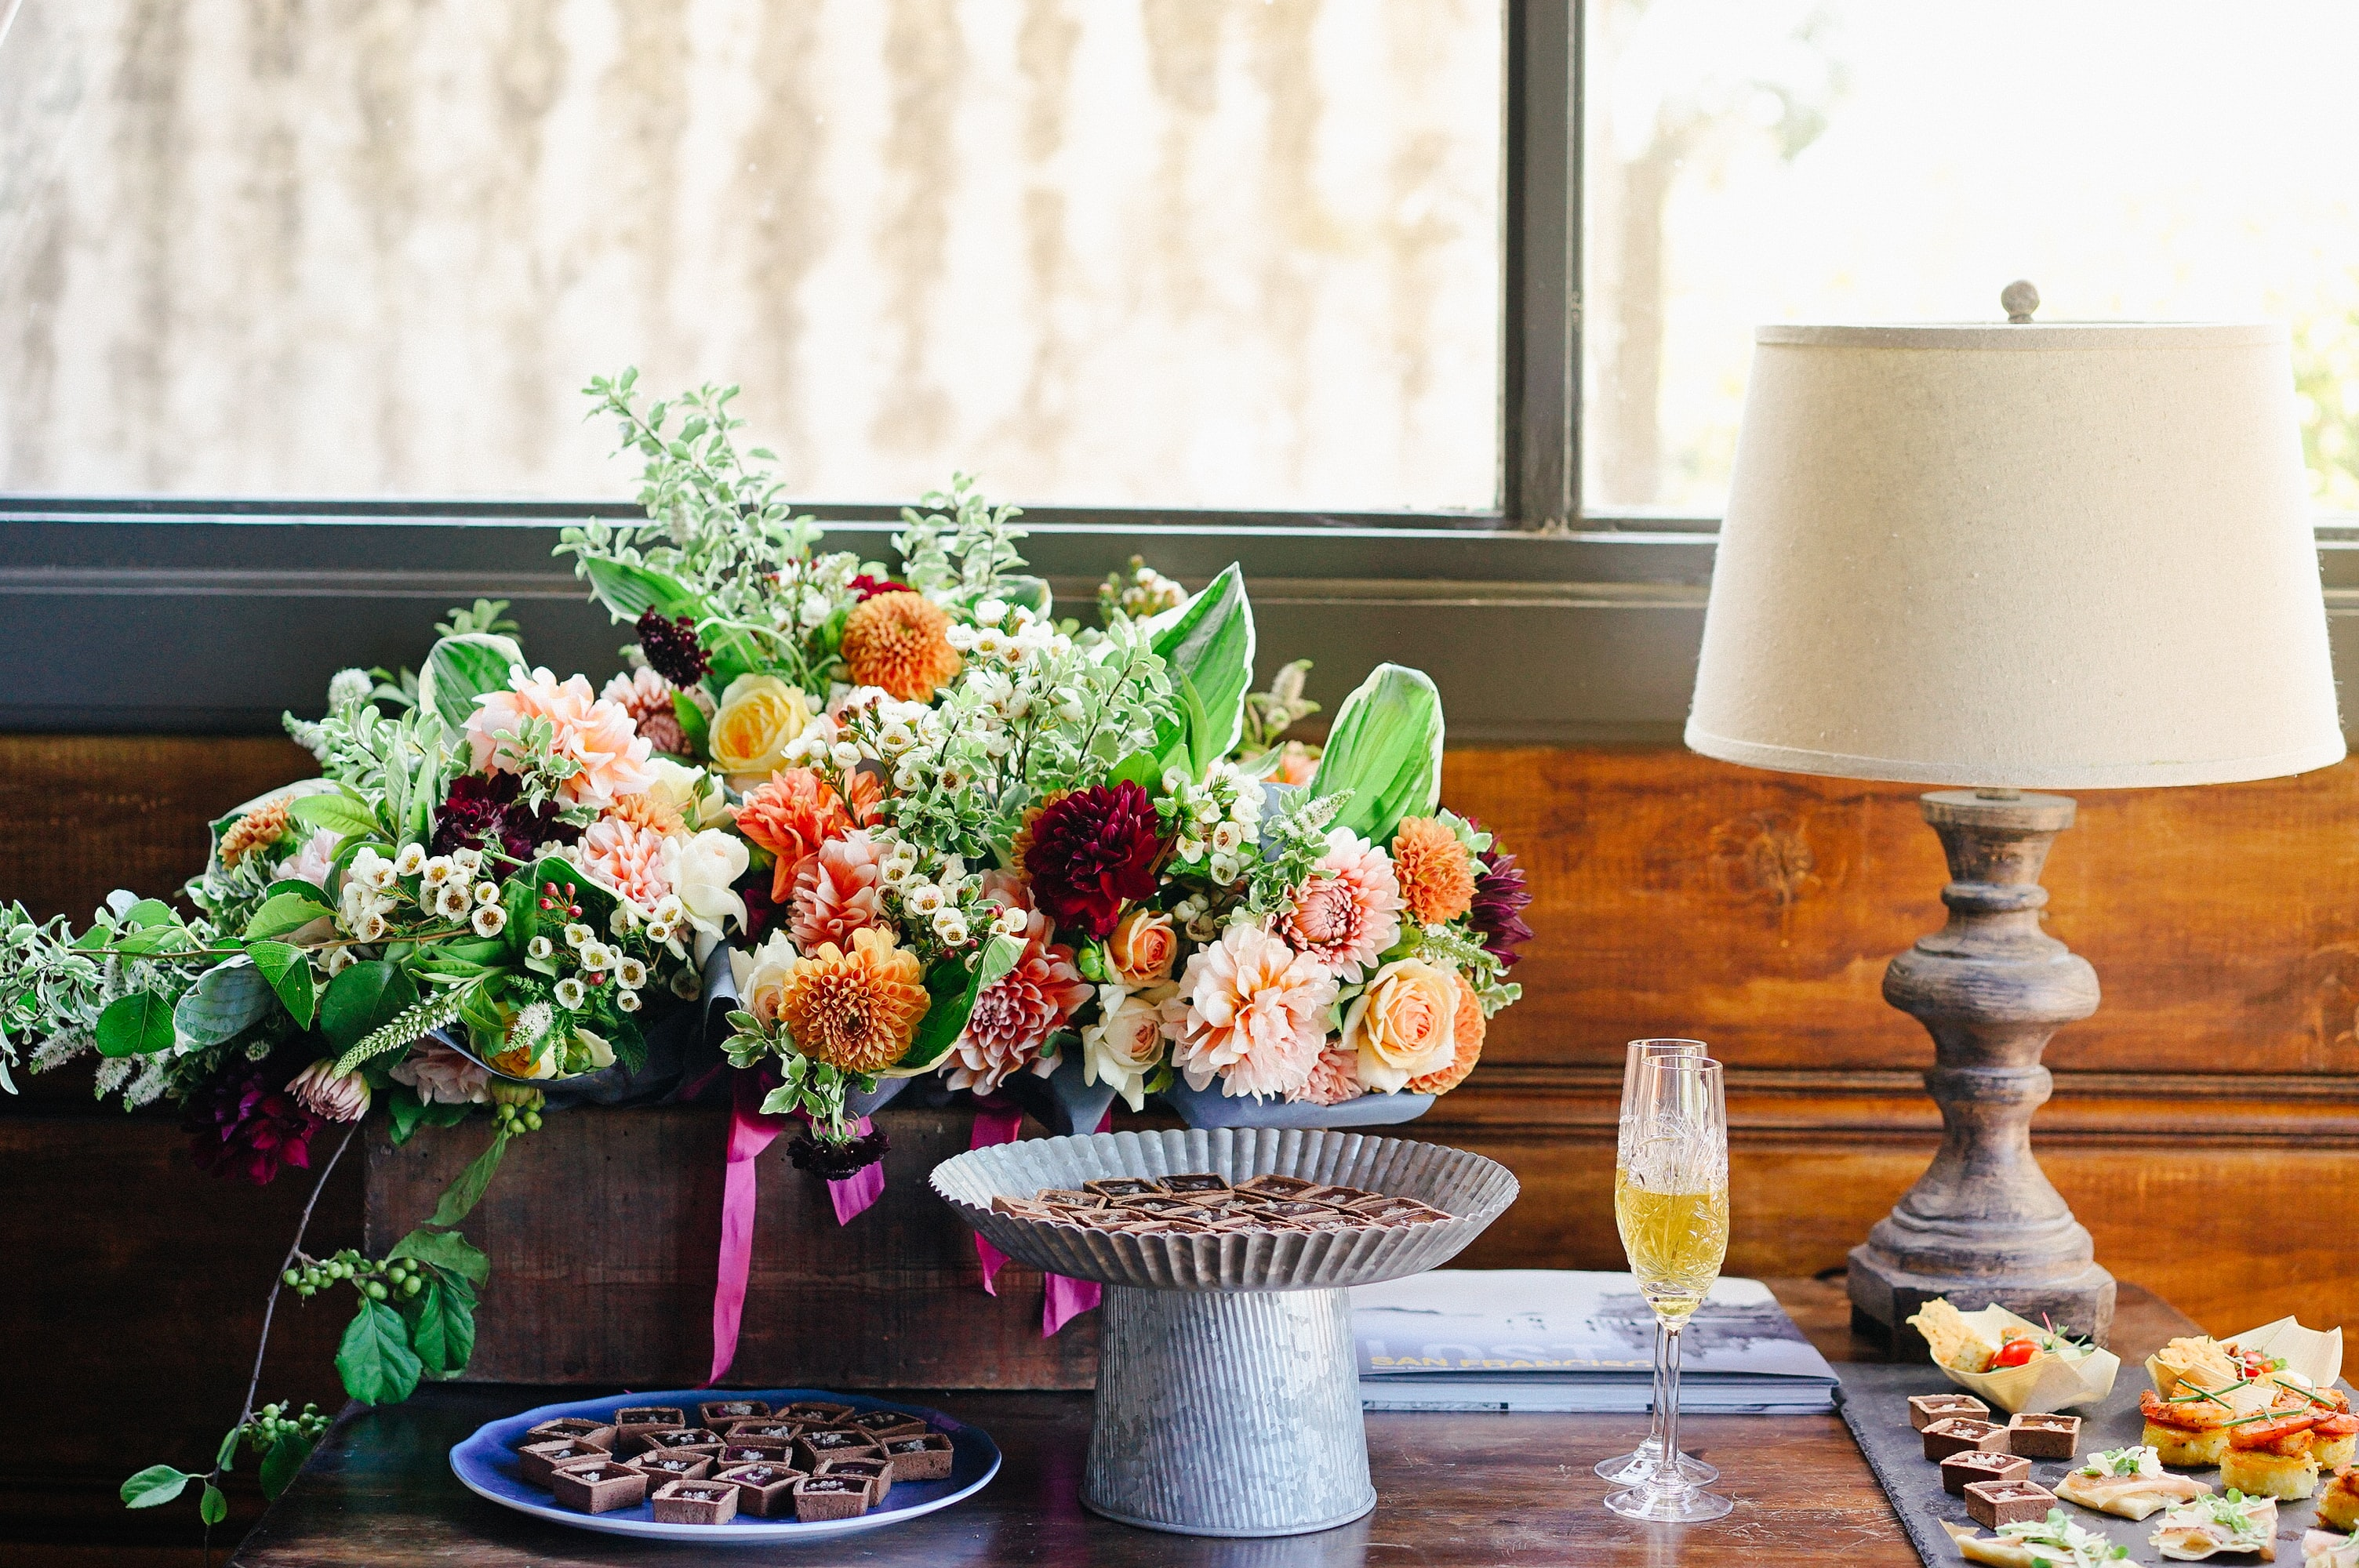 Sweet treats and champagne next to an impressive arrangement of flowers on a table